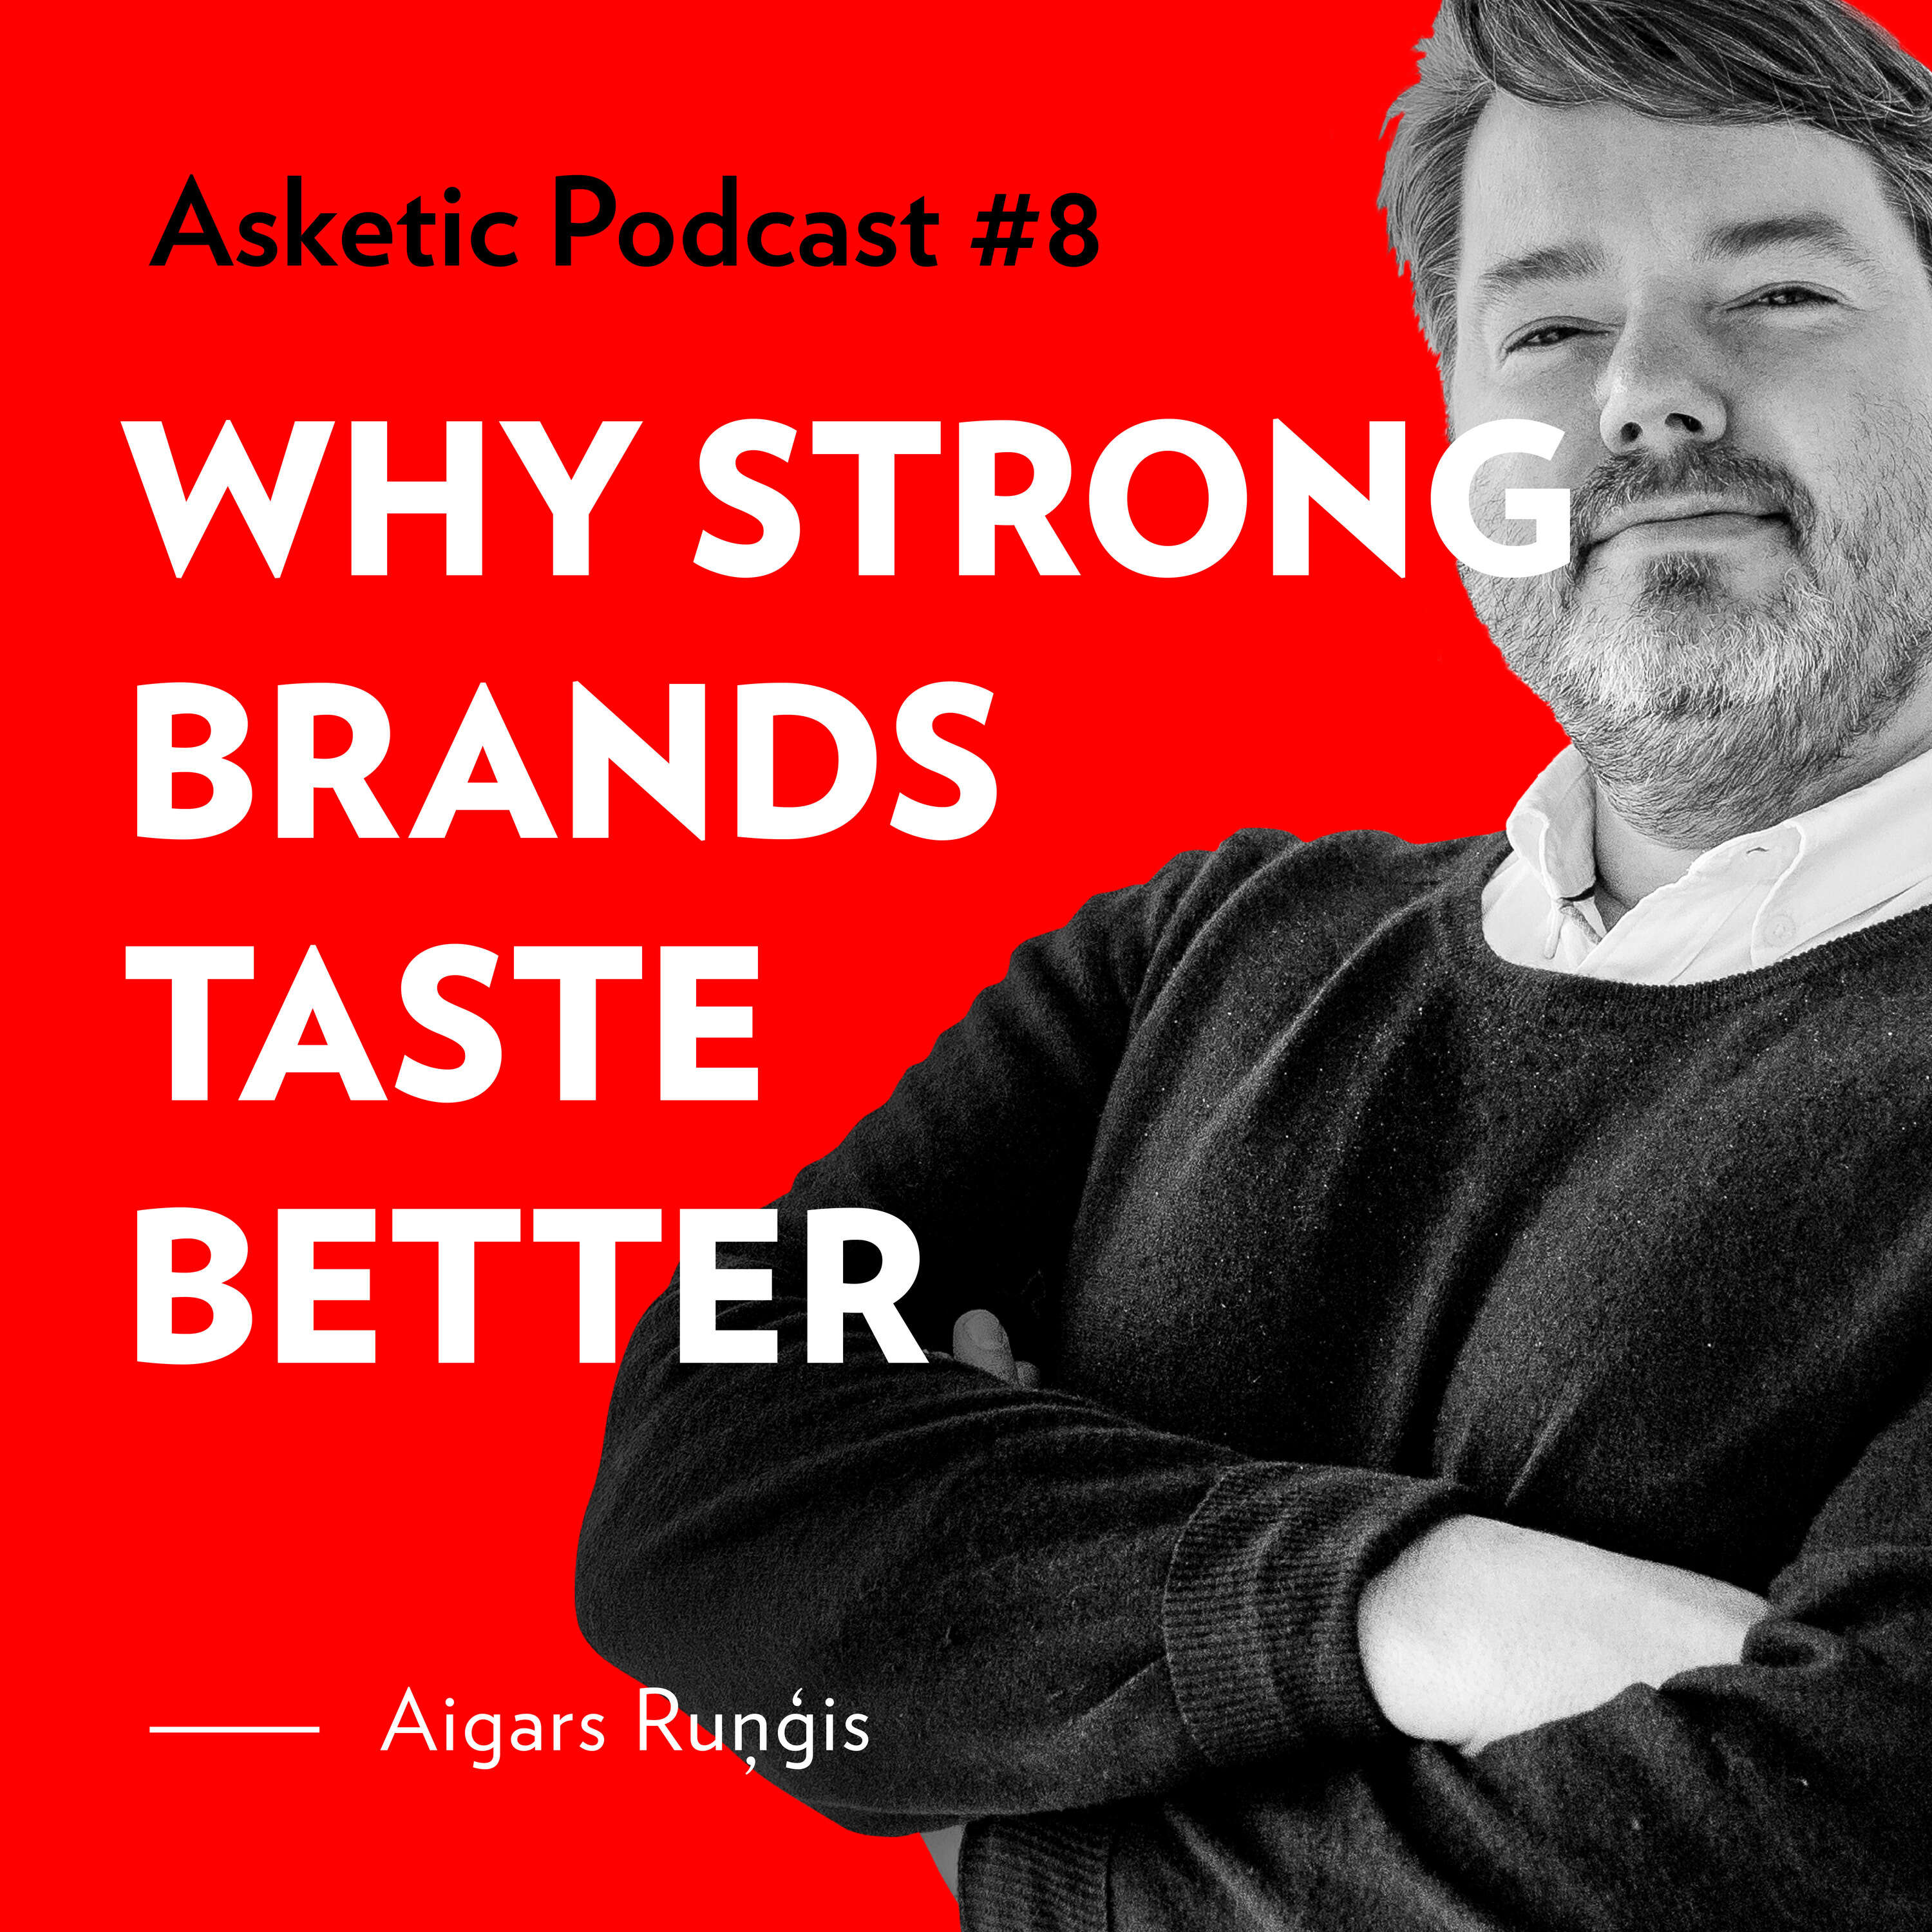 Asketic Podcast #8 Aigars Ruņģis — Why Strong Brands Taste Better